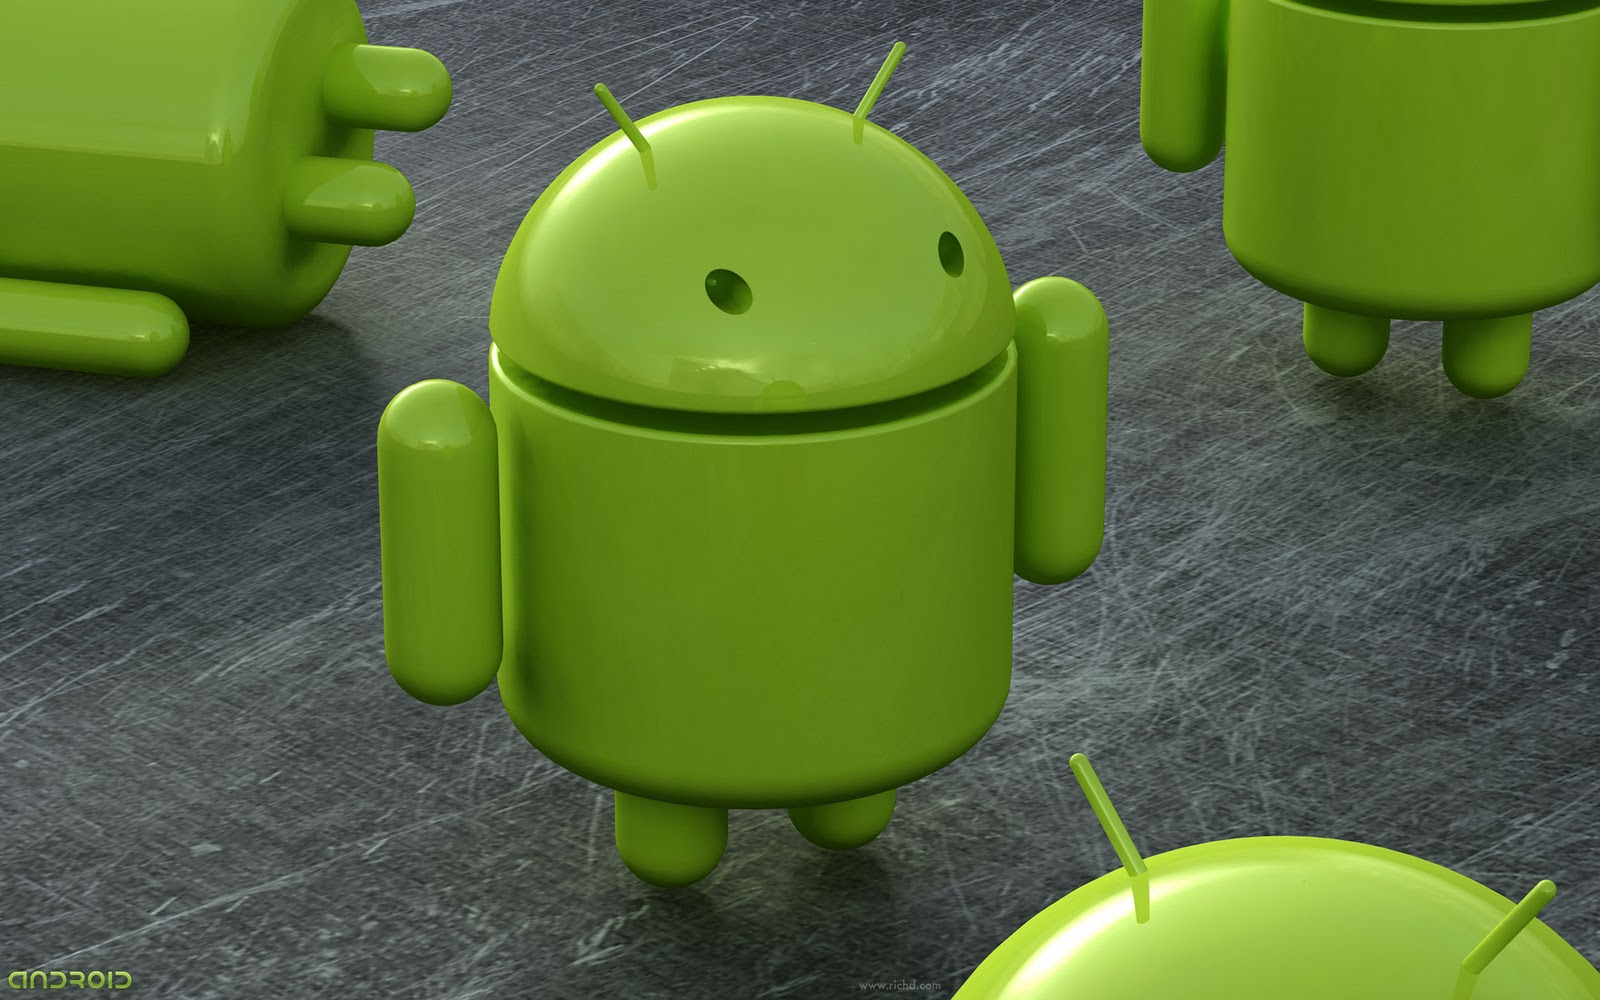 15 Beautiful ANDROID Wallpapers For Desktop | Tech Drive-in